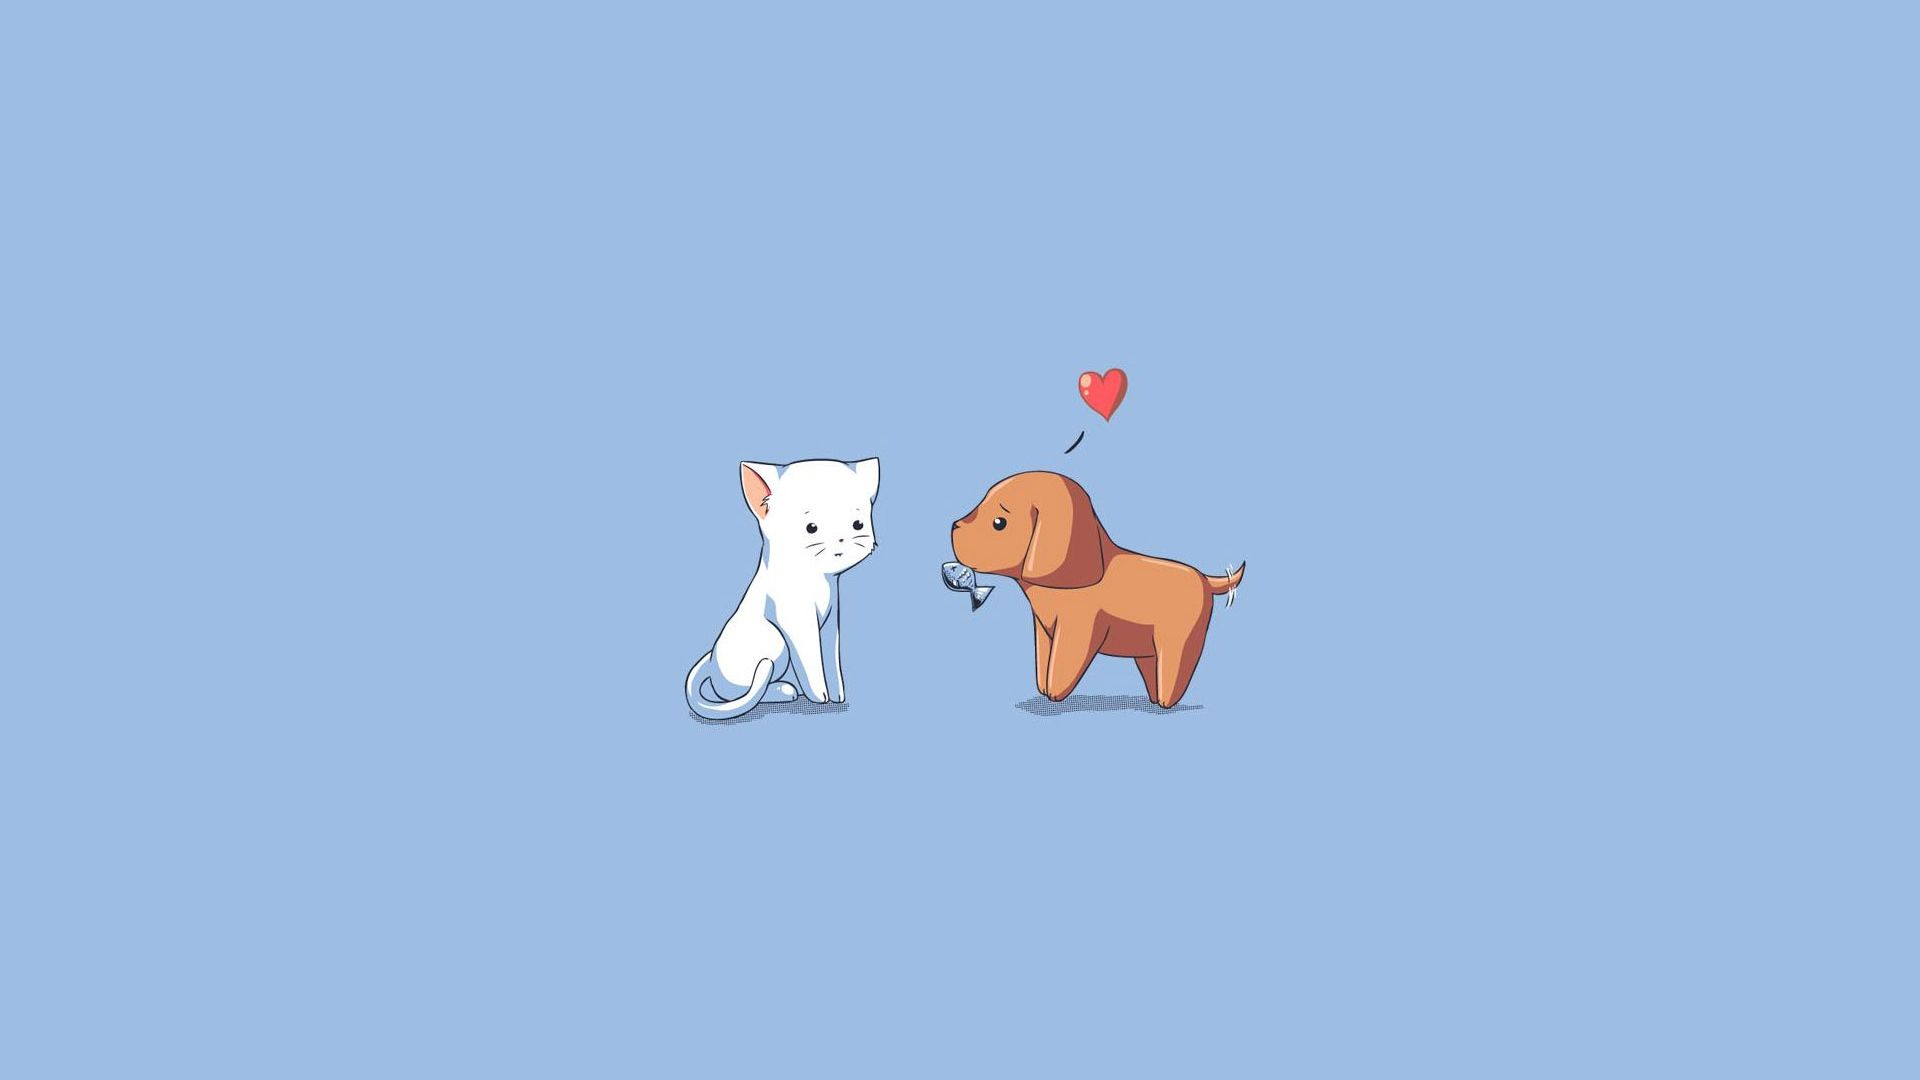 1920x1080 Wallpaper Dog Cat Kitten Puppy Drawing Heart With